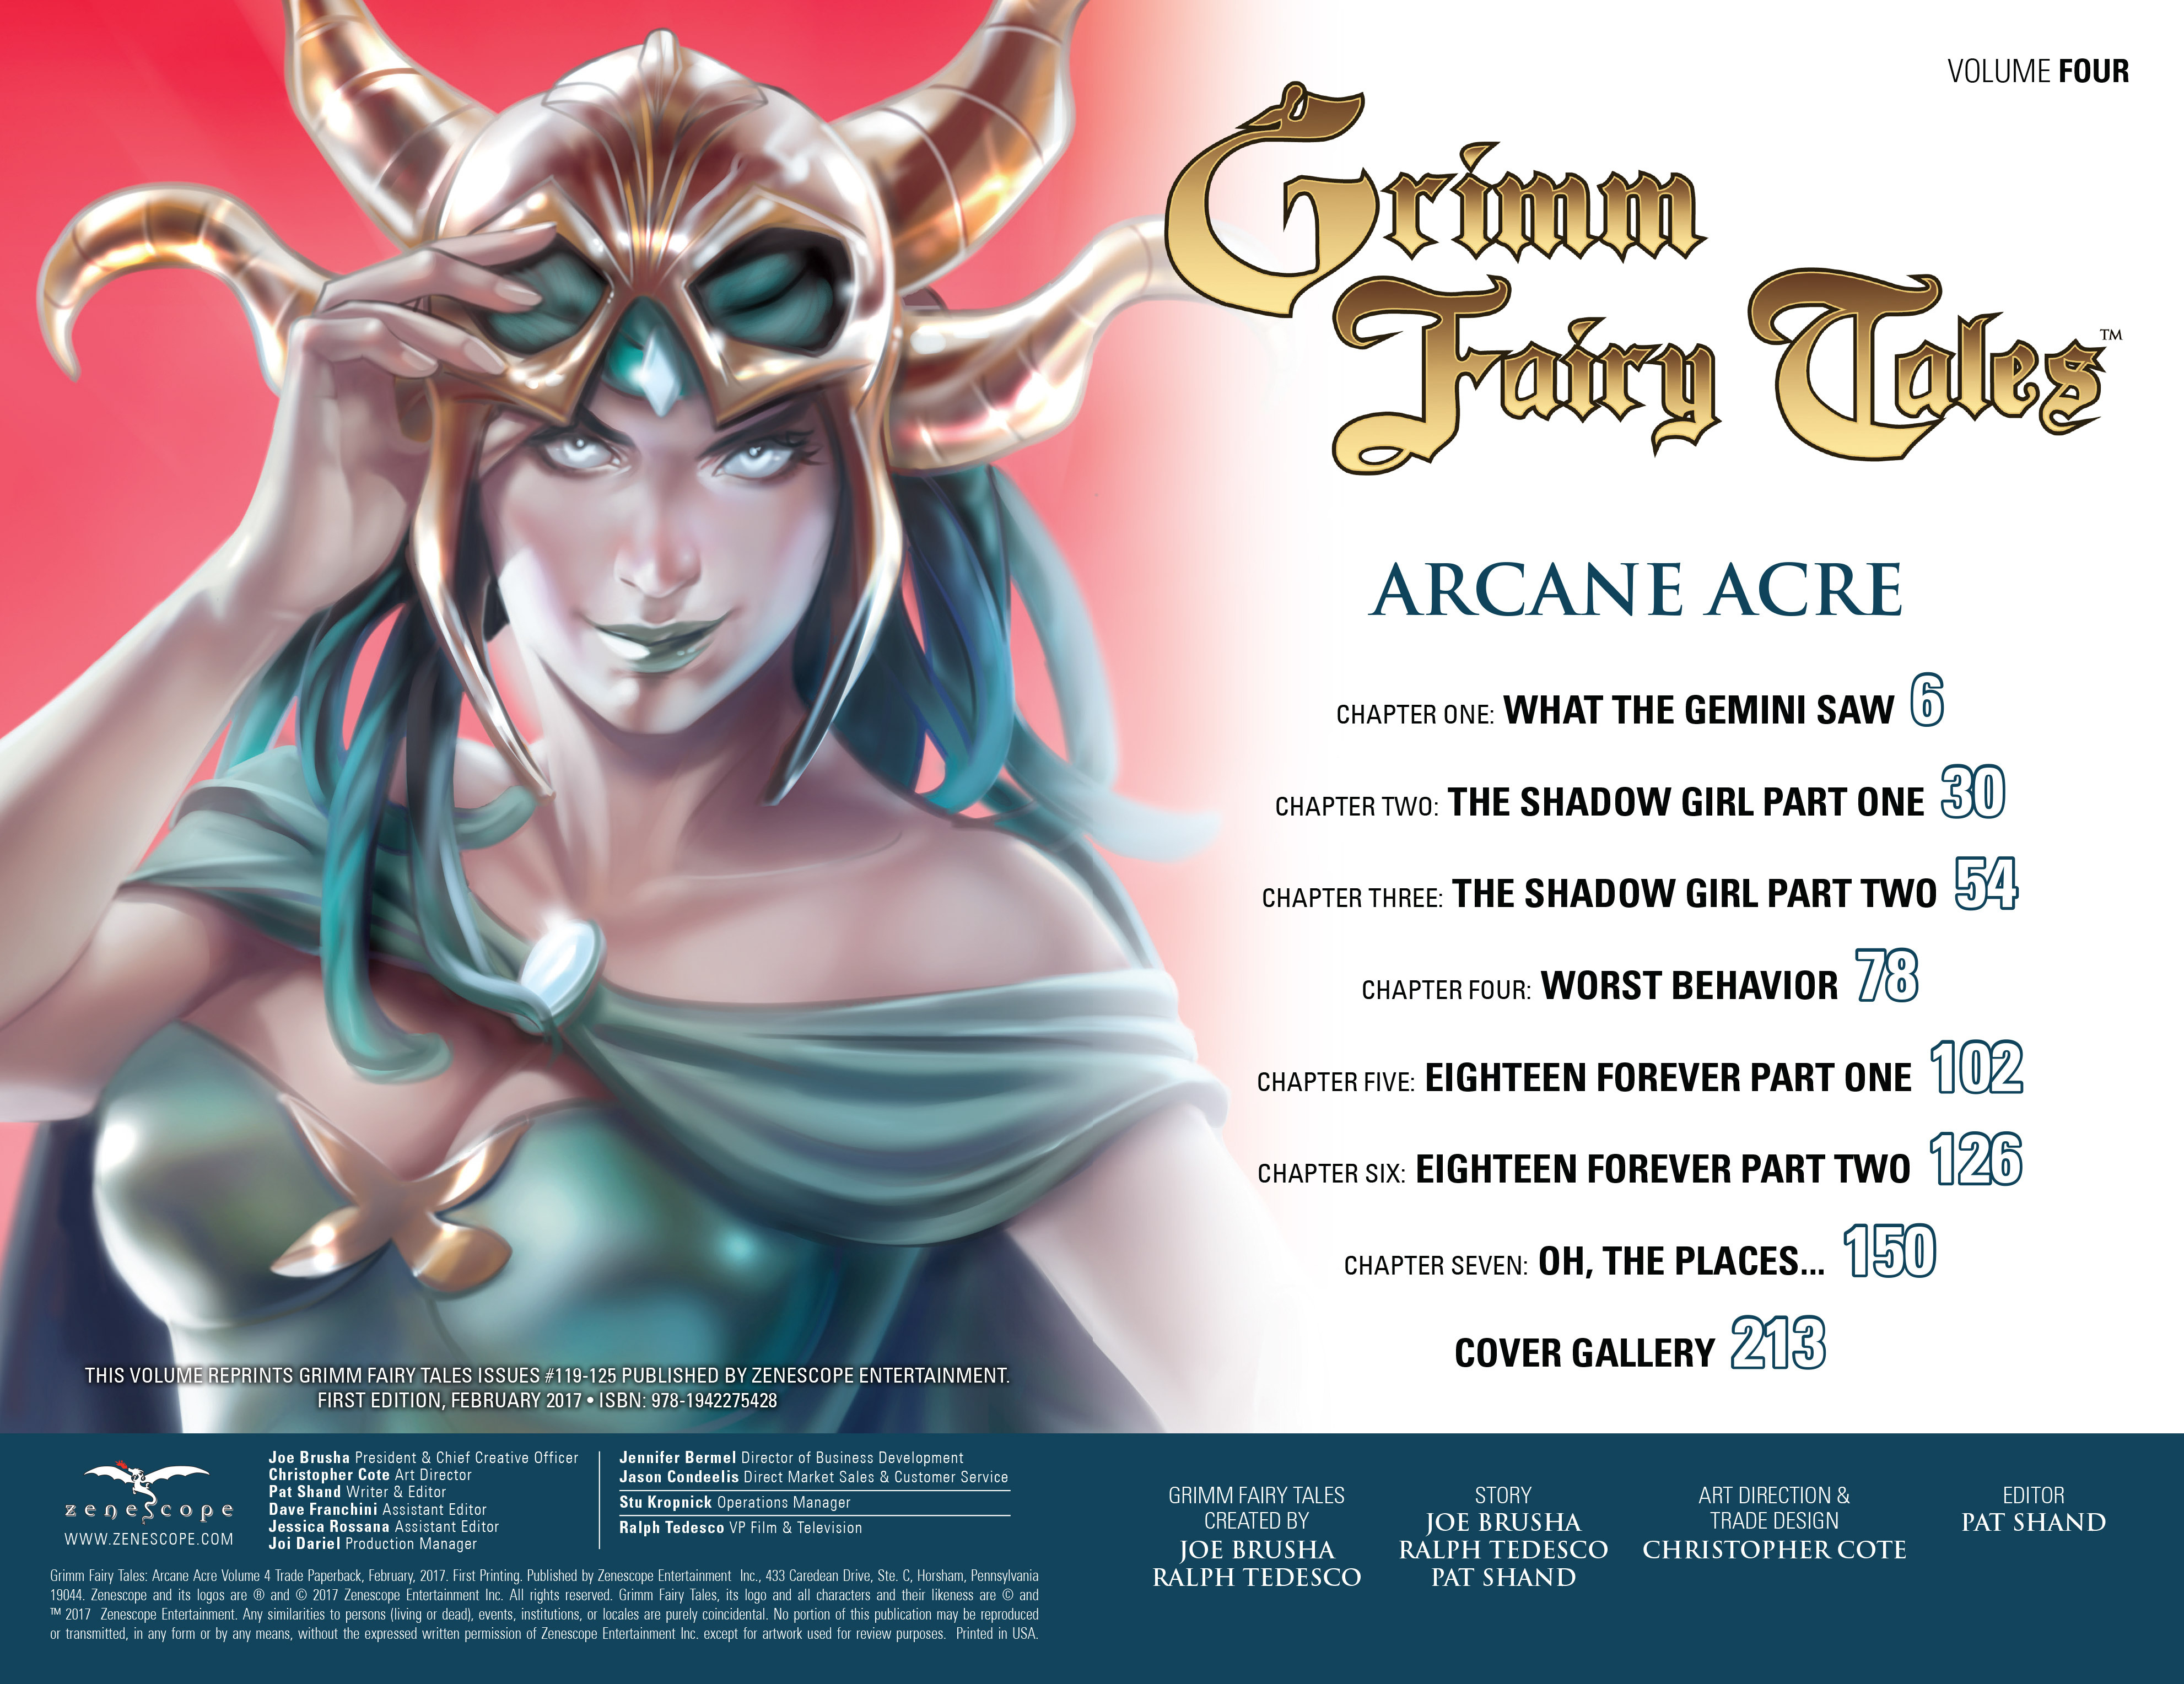 Read online Grimm Fairy Tales: Arcane Acre comic -  Issue # TPB 4 - 3